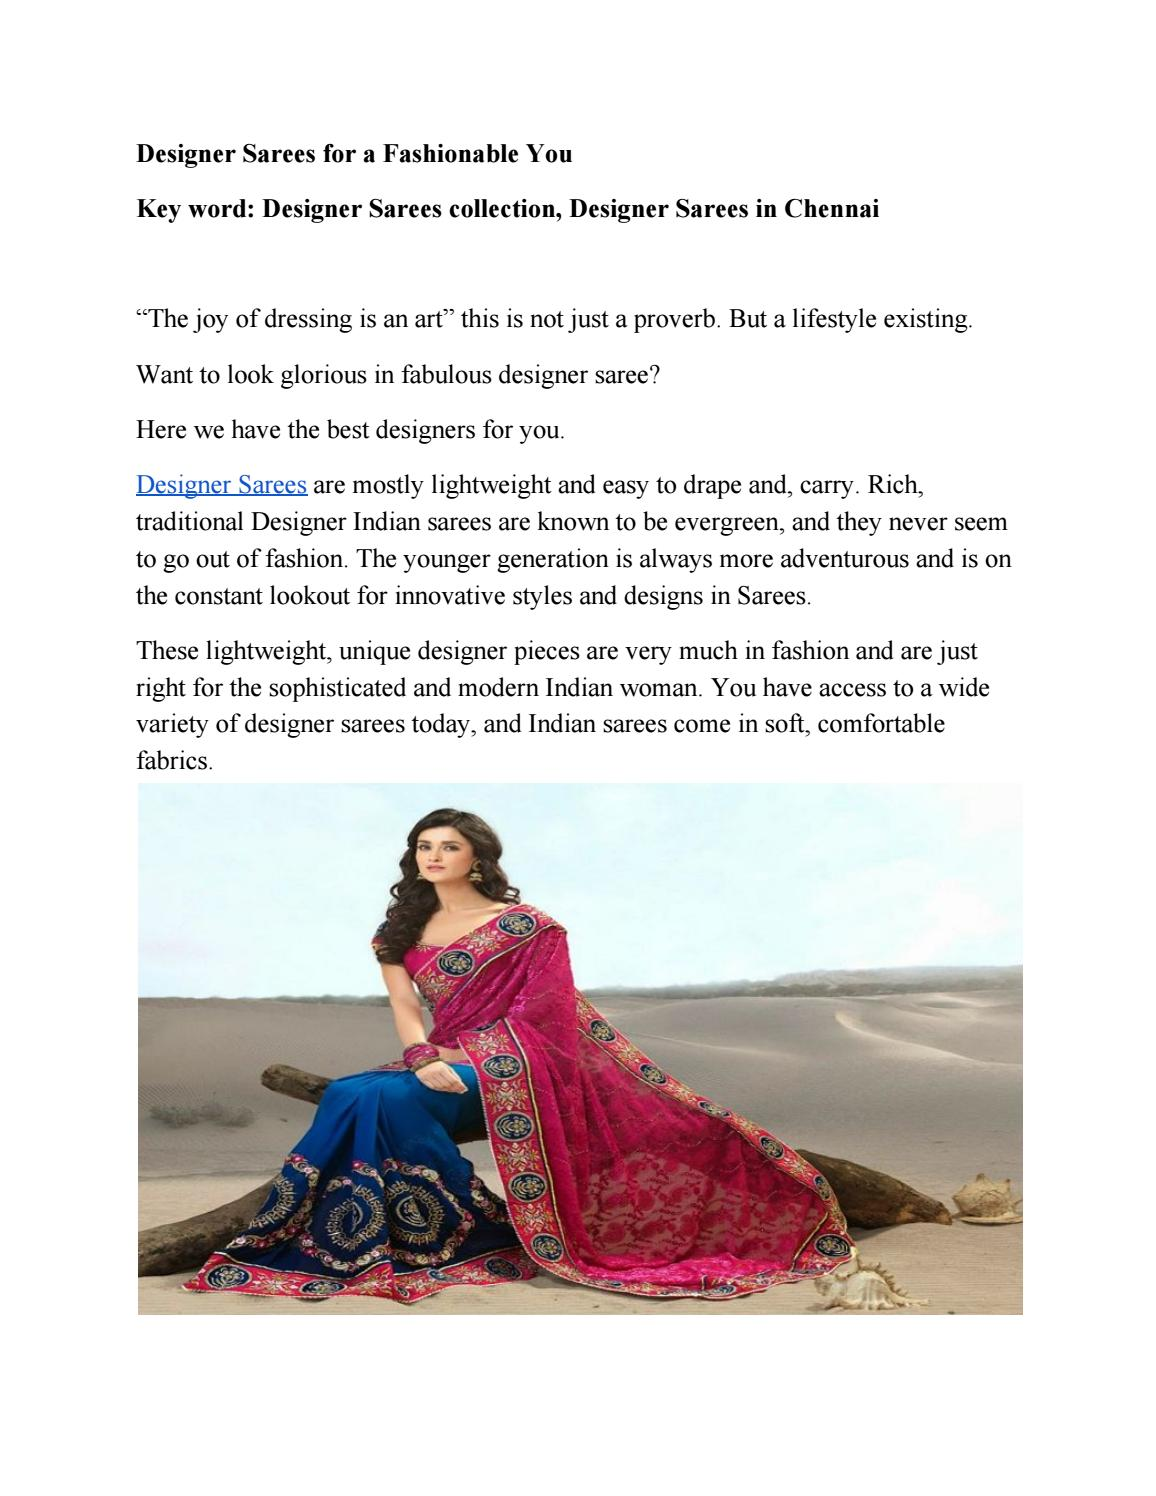 Designer Sarees For A Fashionable You By Chennai Pothysall Issuu